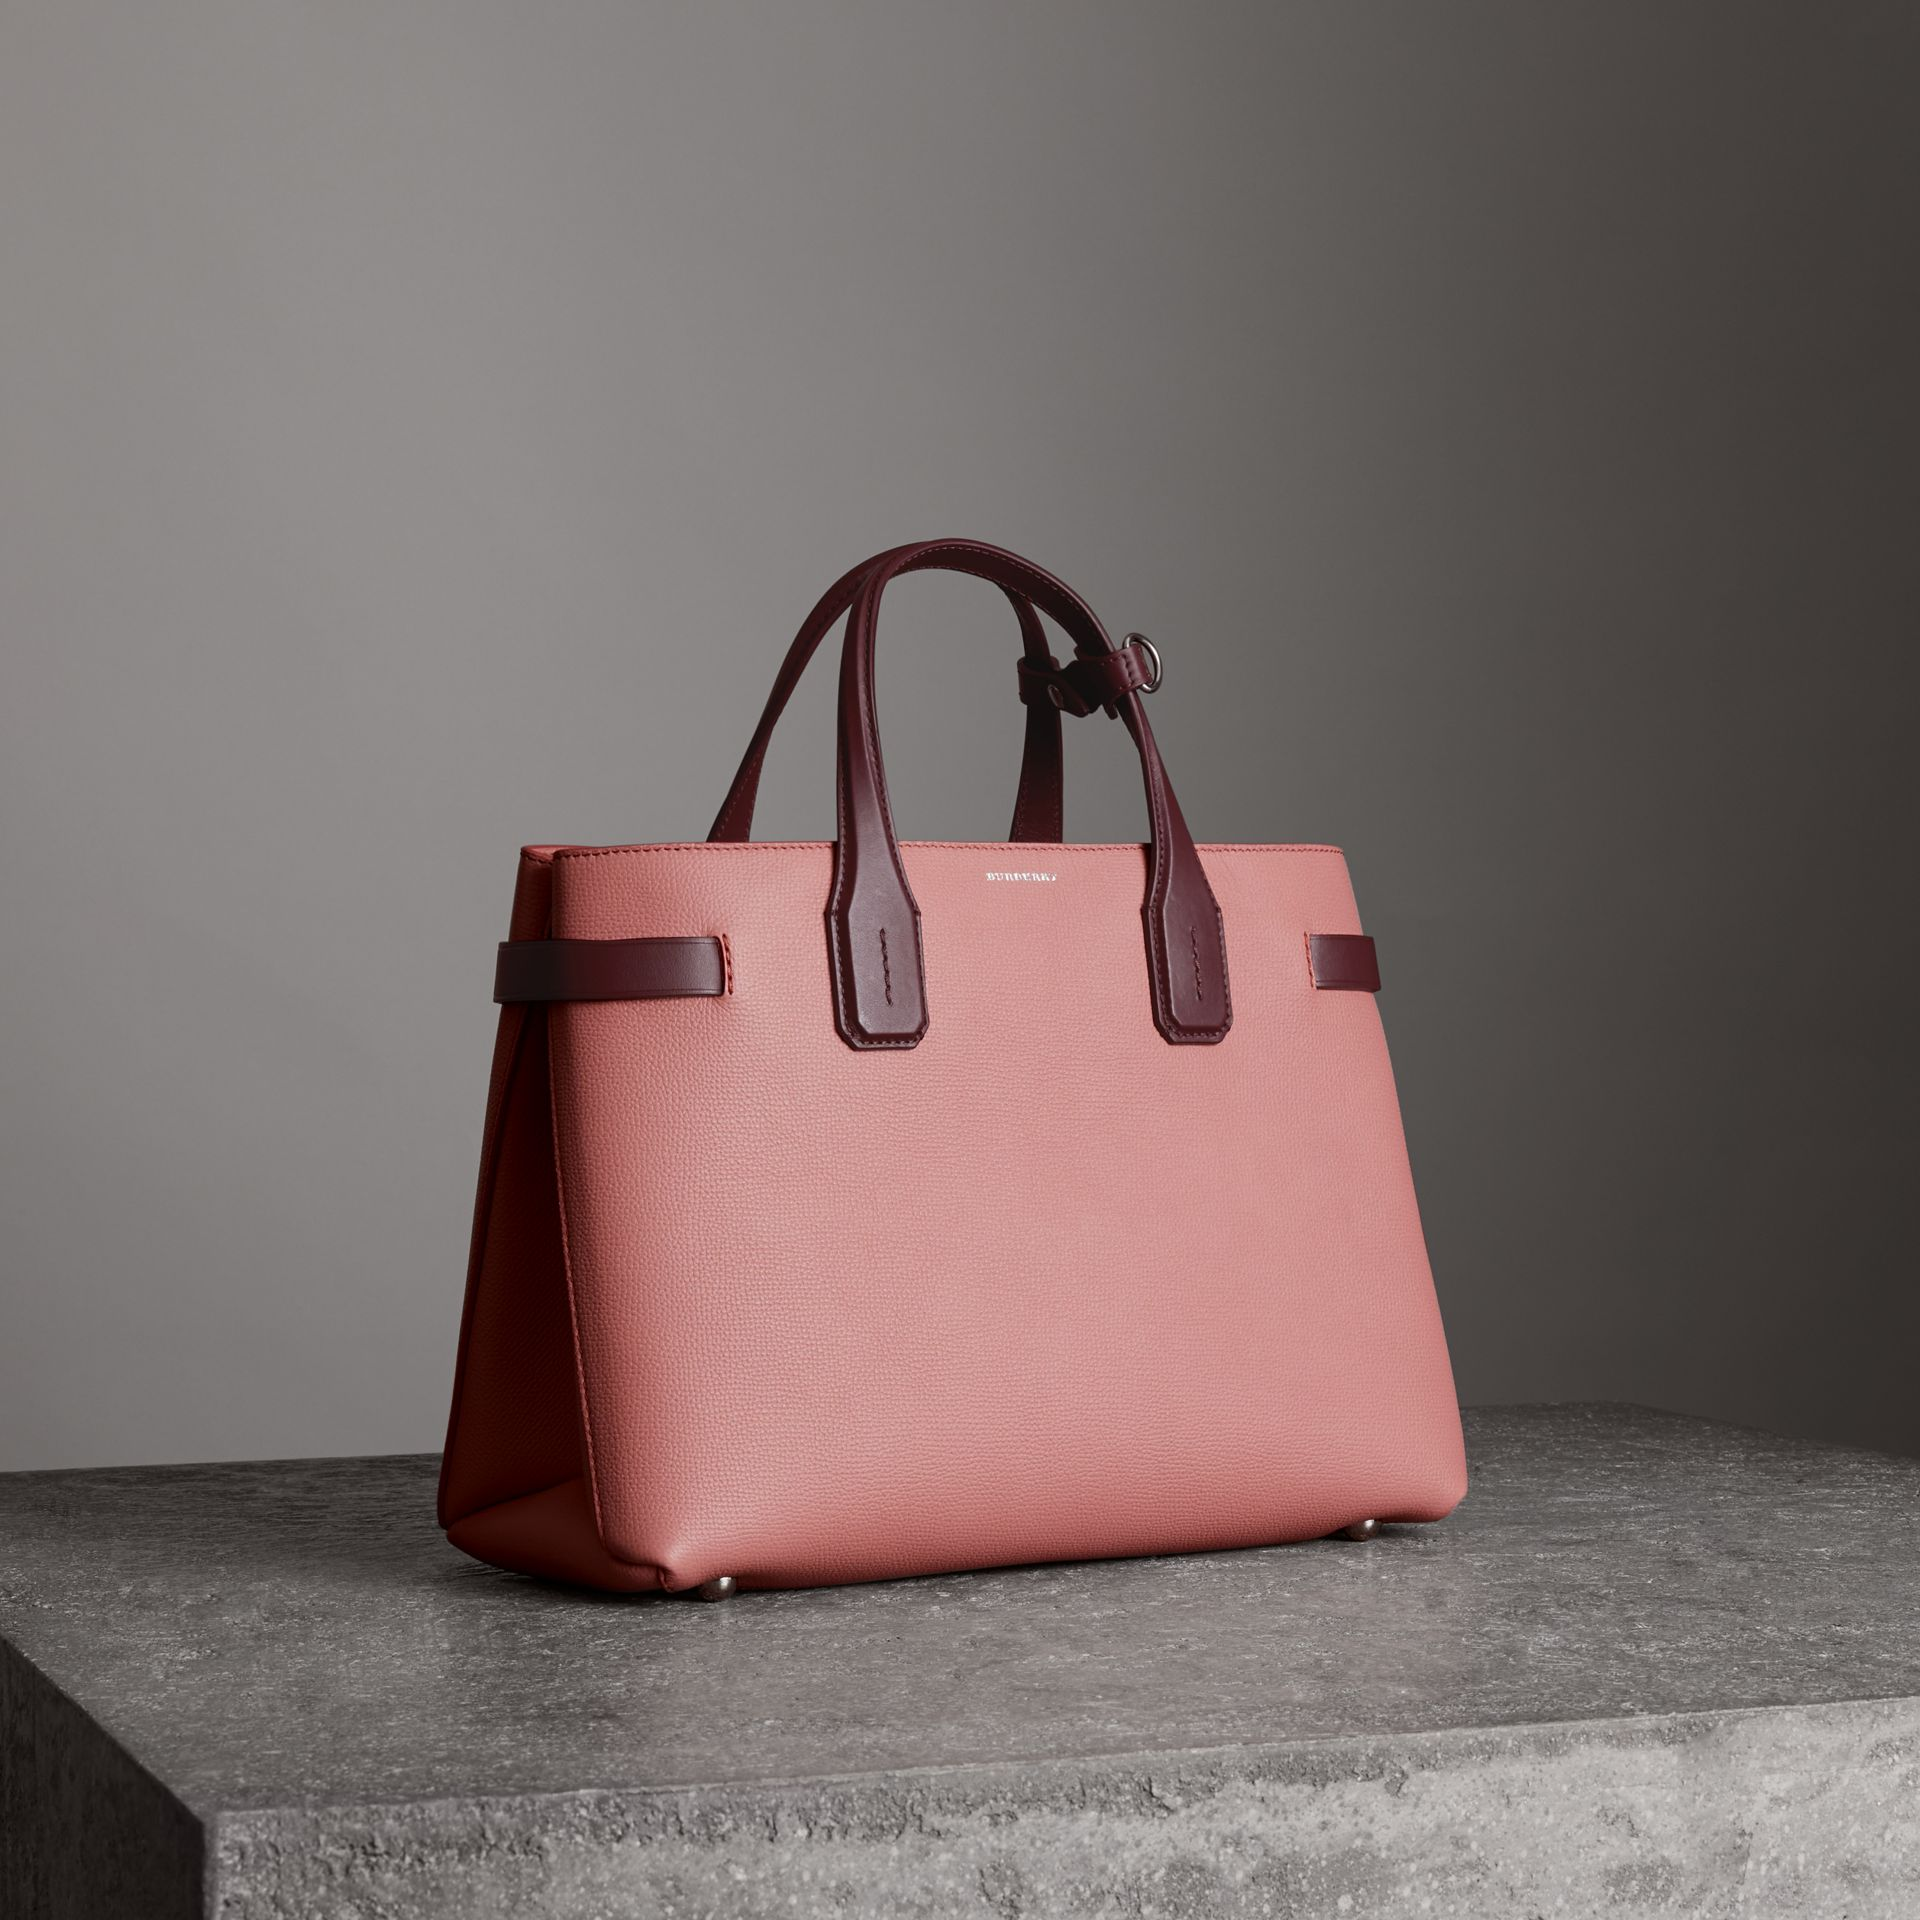 Burberry The Medium Banner In Two-Tone Leather In Pink   ModeSens 3f78d2ec8b